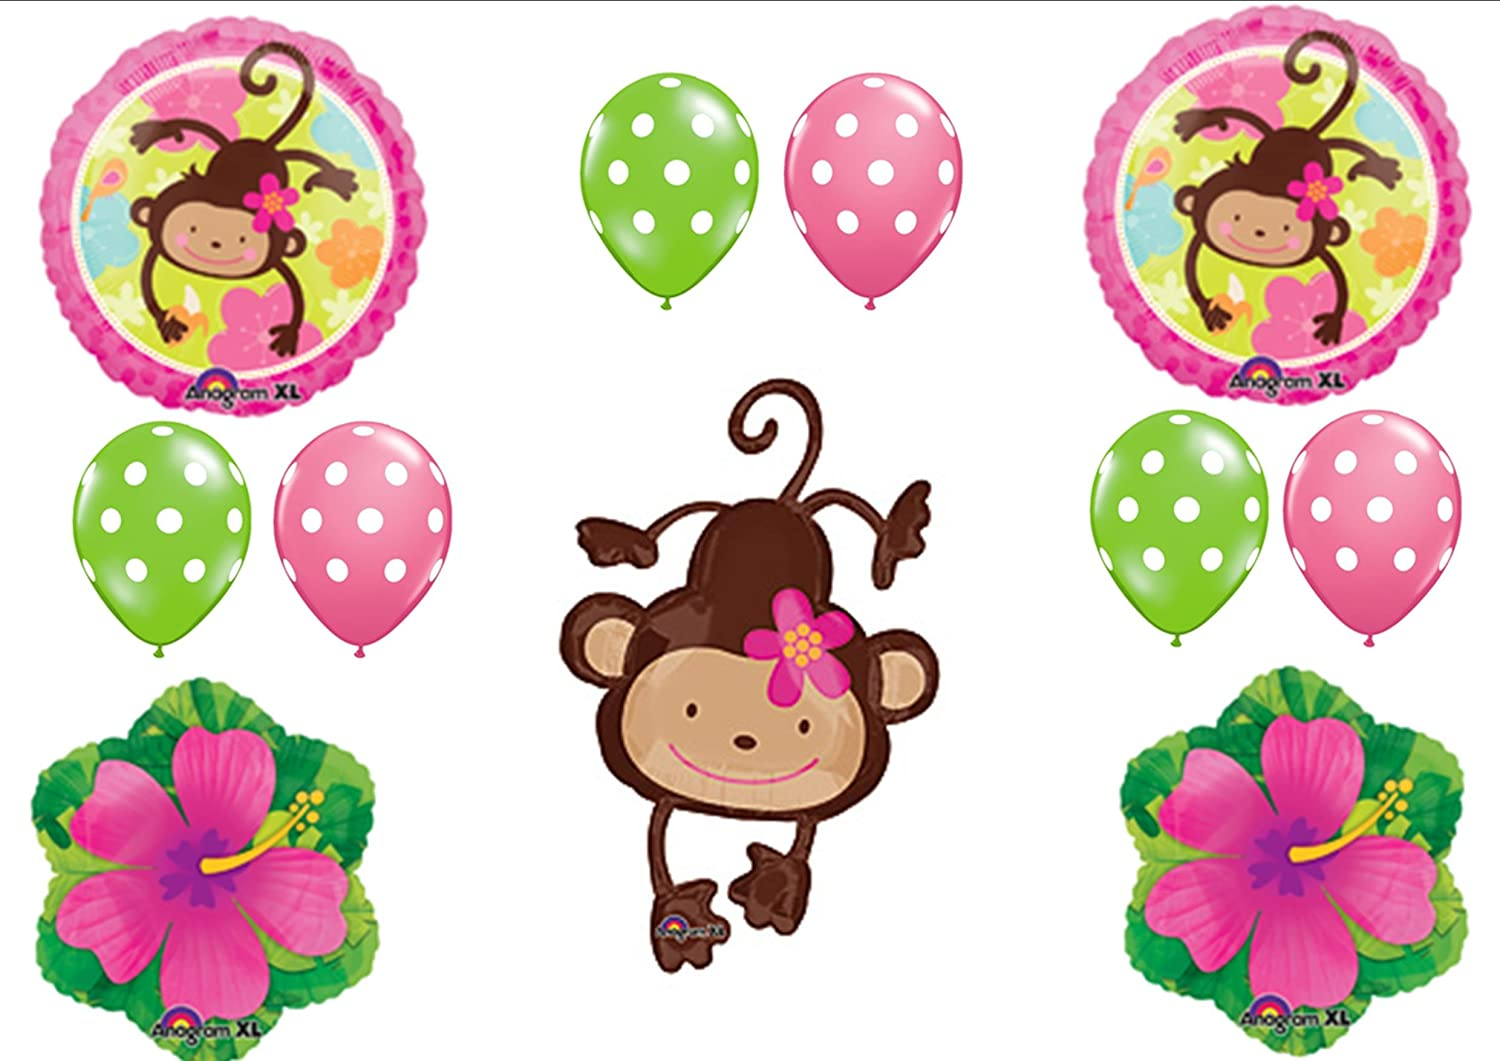 Pink monkey baby shower balloons baby shower mania - Monkey balloons for baby shower ...